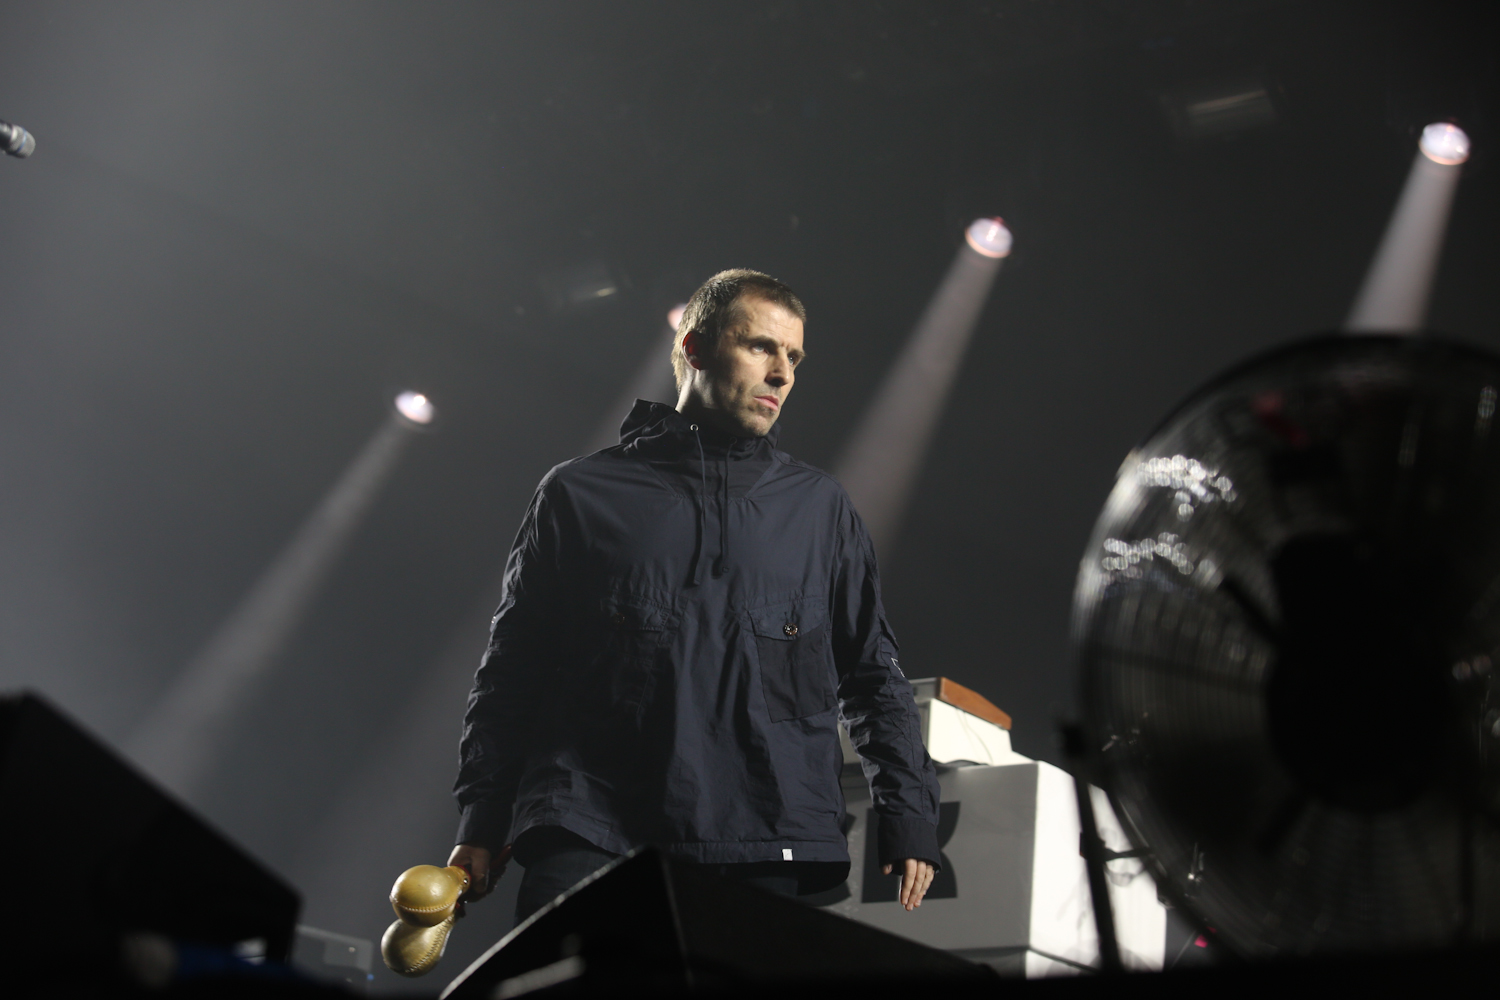 RIOT_LiamGallagher_006